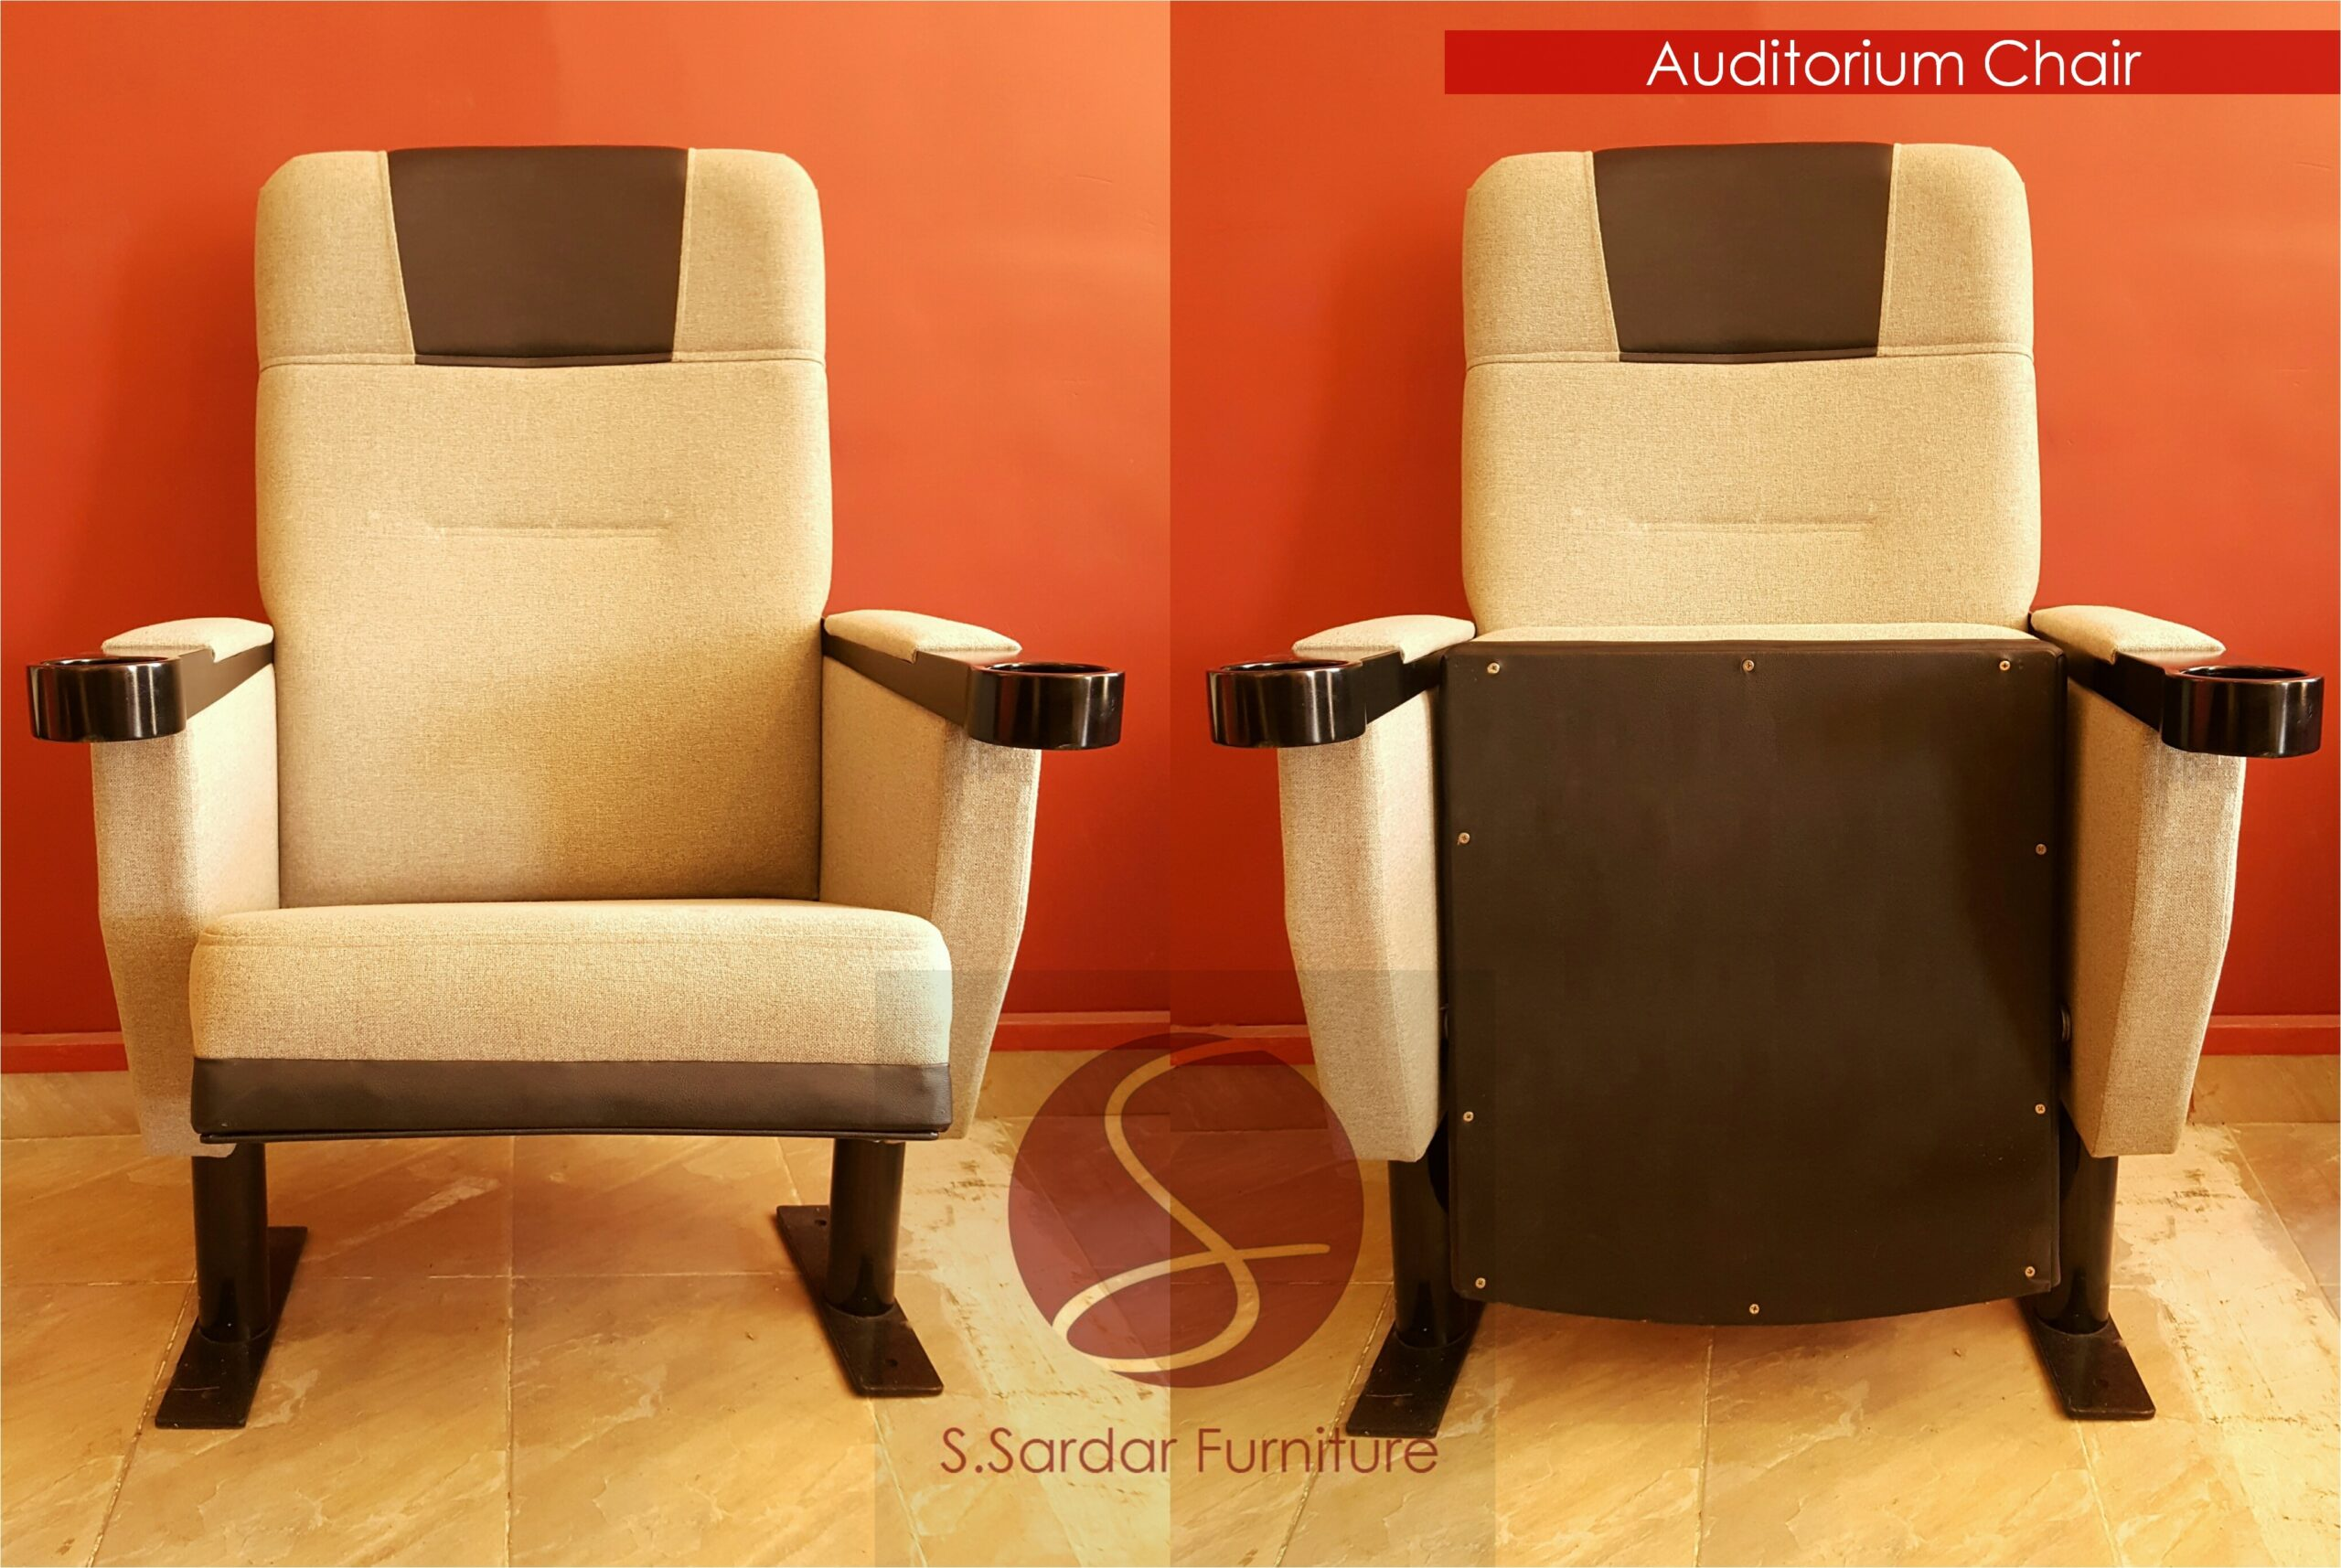 final-audi-chair-1-scaled